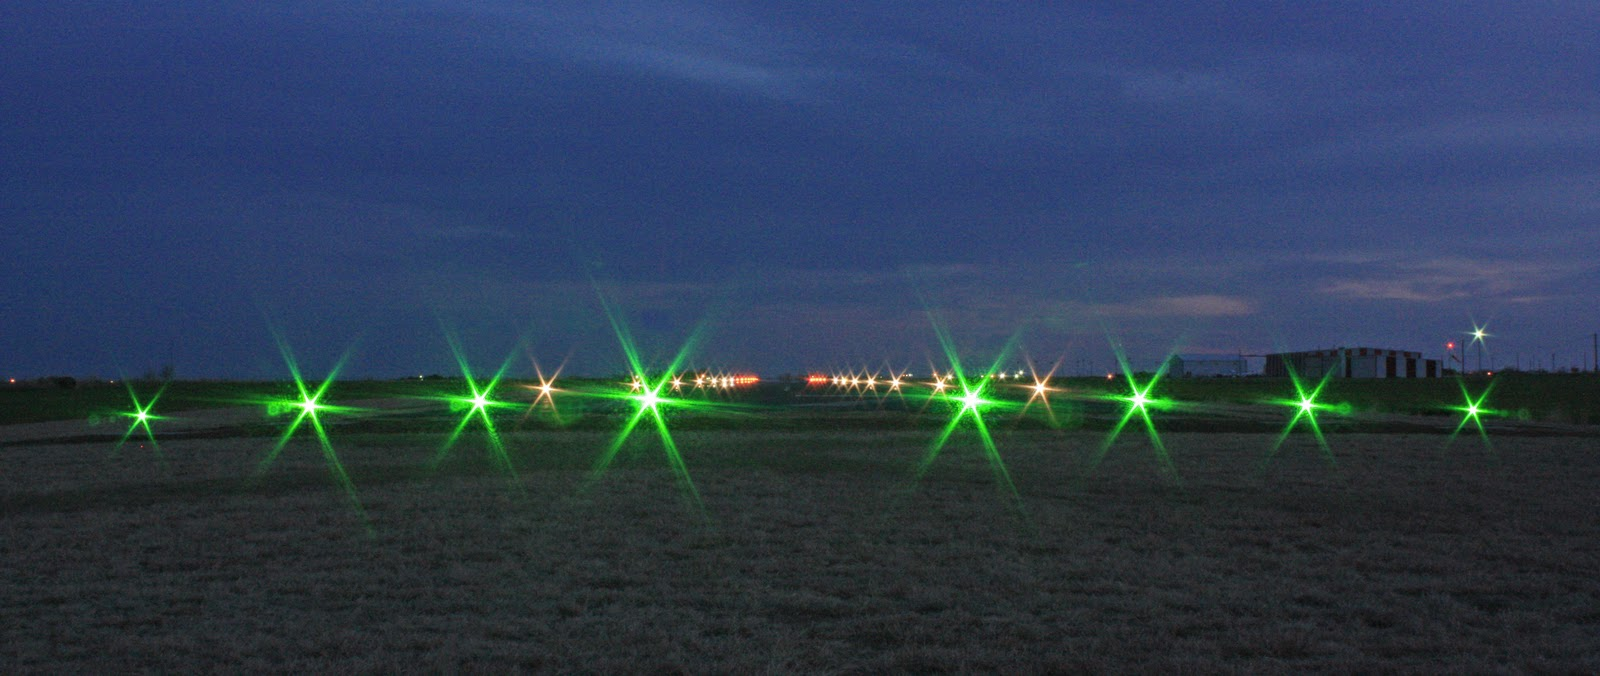 Led runway lights